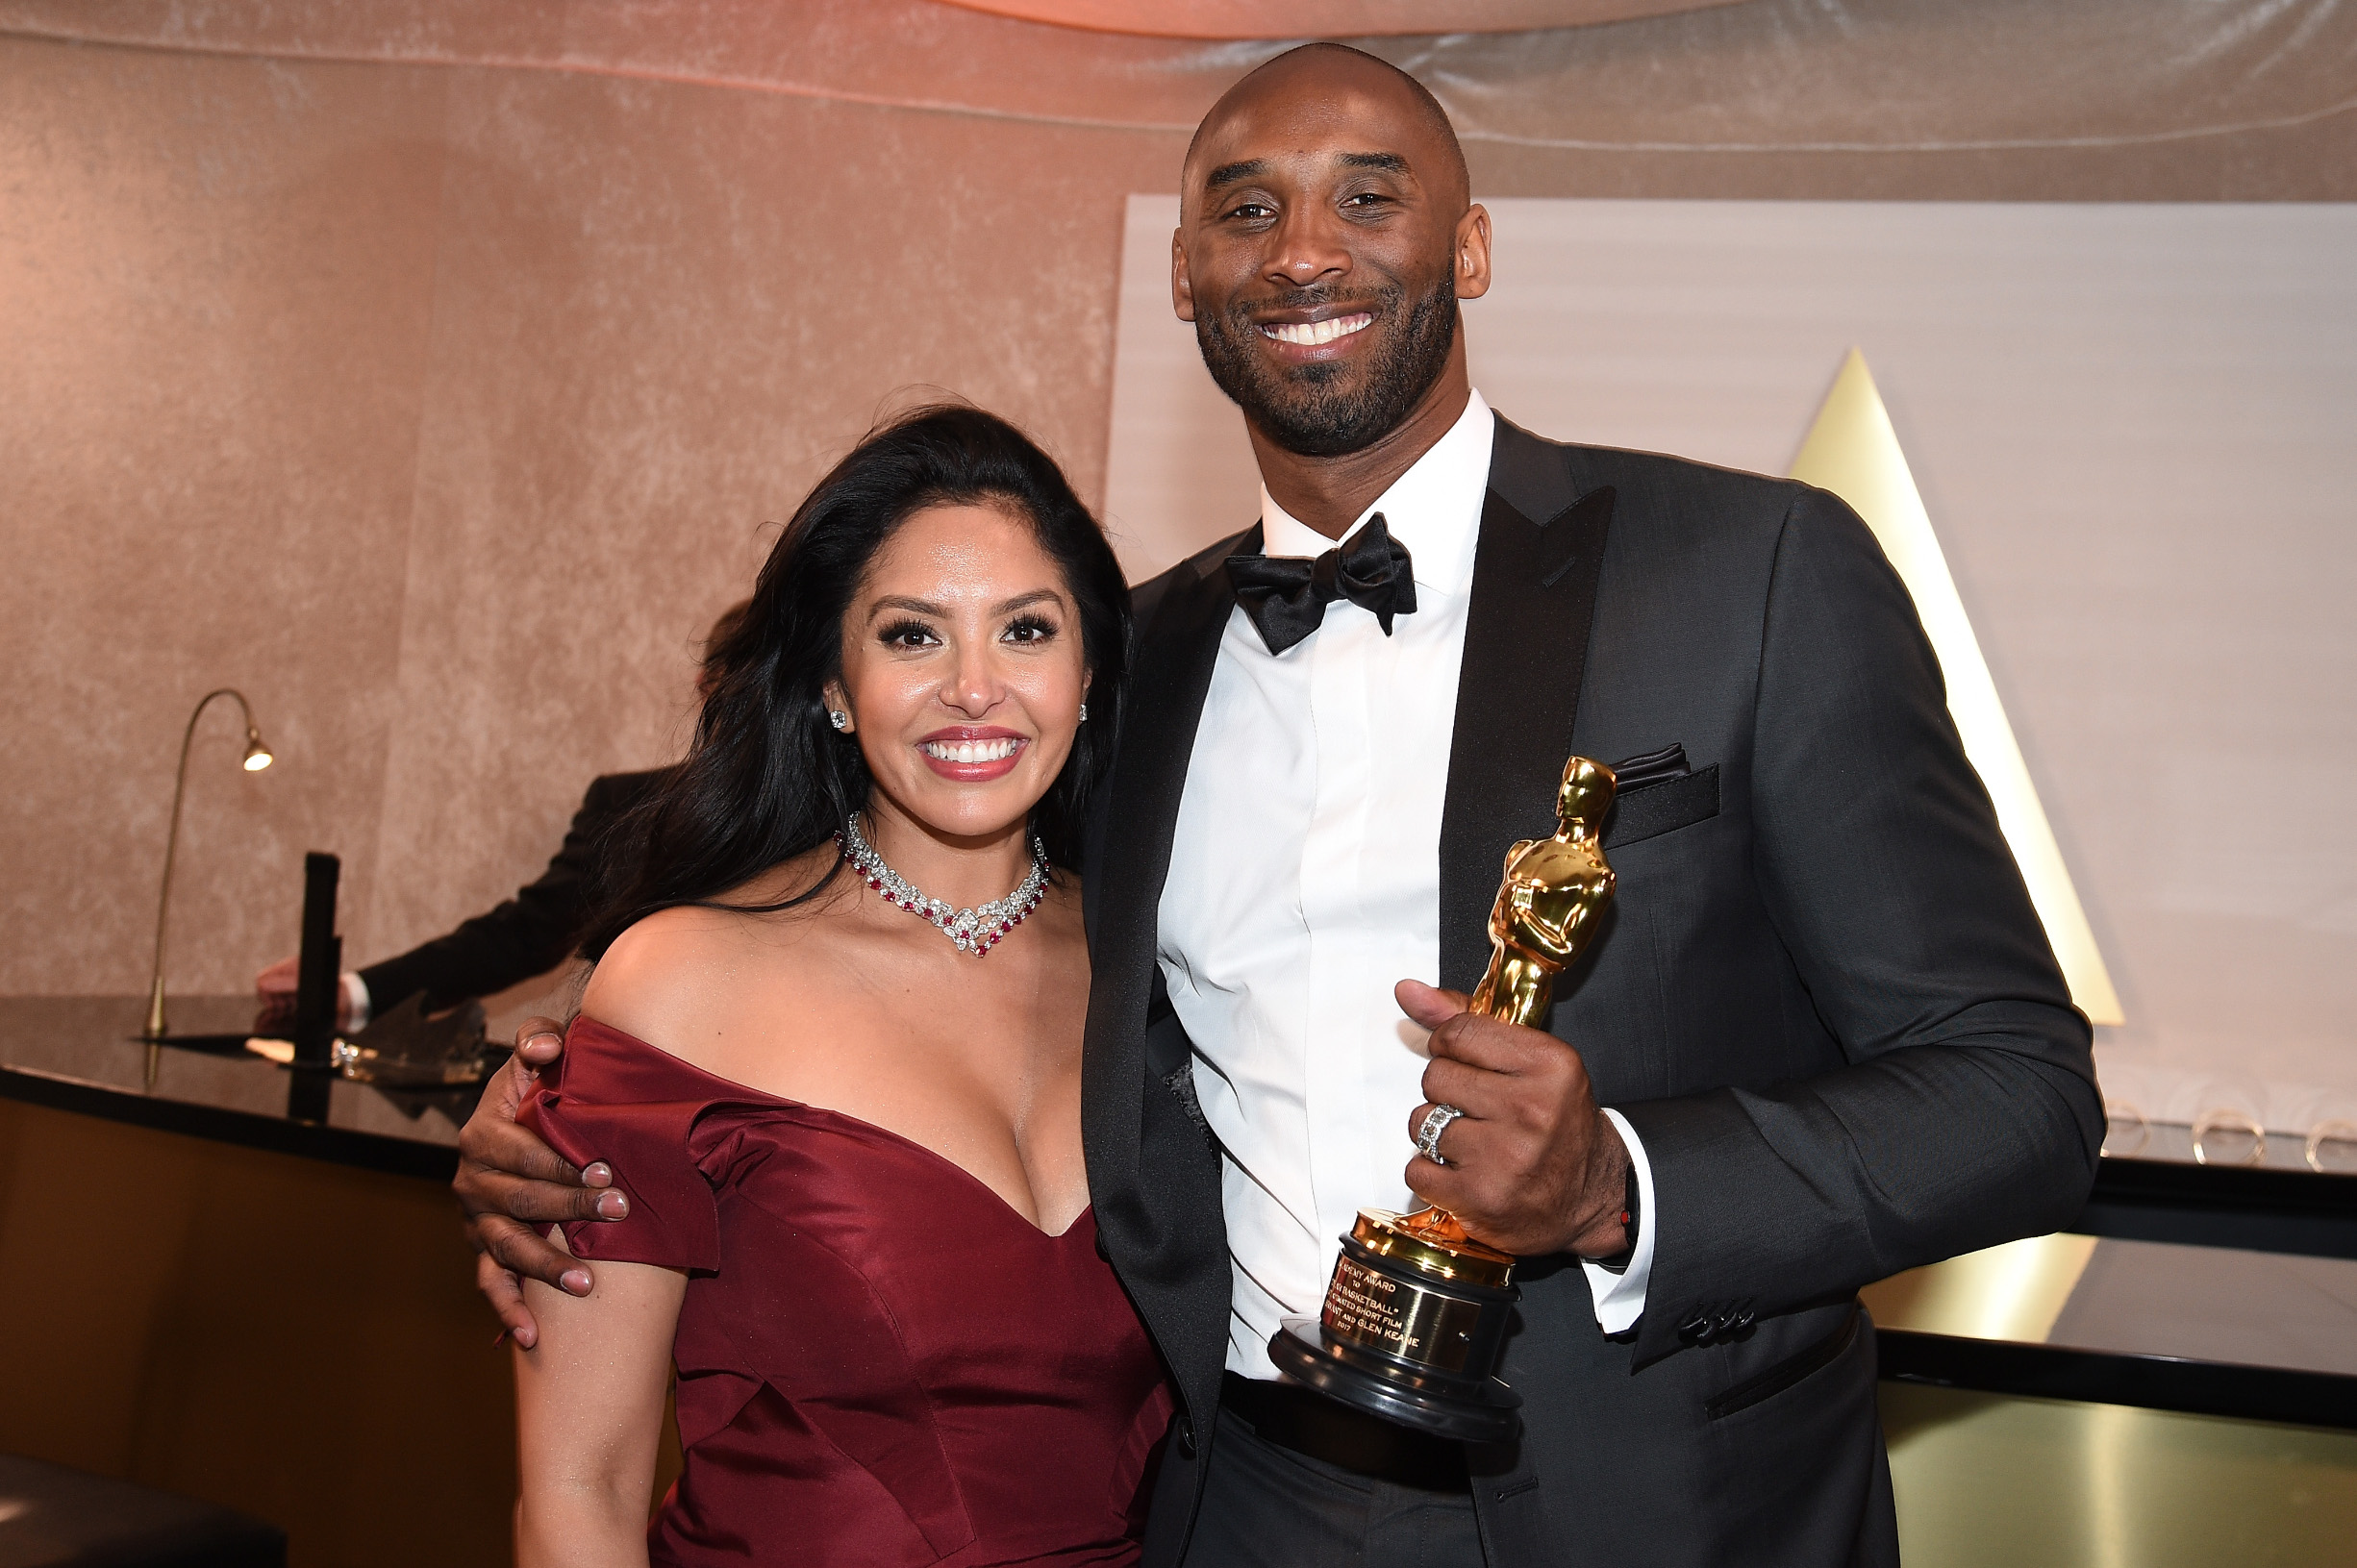 HOLLYWOOD, CA - MARCH 04:  Kobe Bryant (R) and Vanessa Laine Bryant attend the 90th Annual Academy Awards Governors Ball at Hollywood & Highland Center on March 4, 2018 in Hollywood, California.  (Photo by Kevork Djansezian/Getty Images)